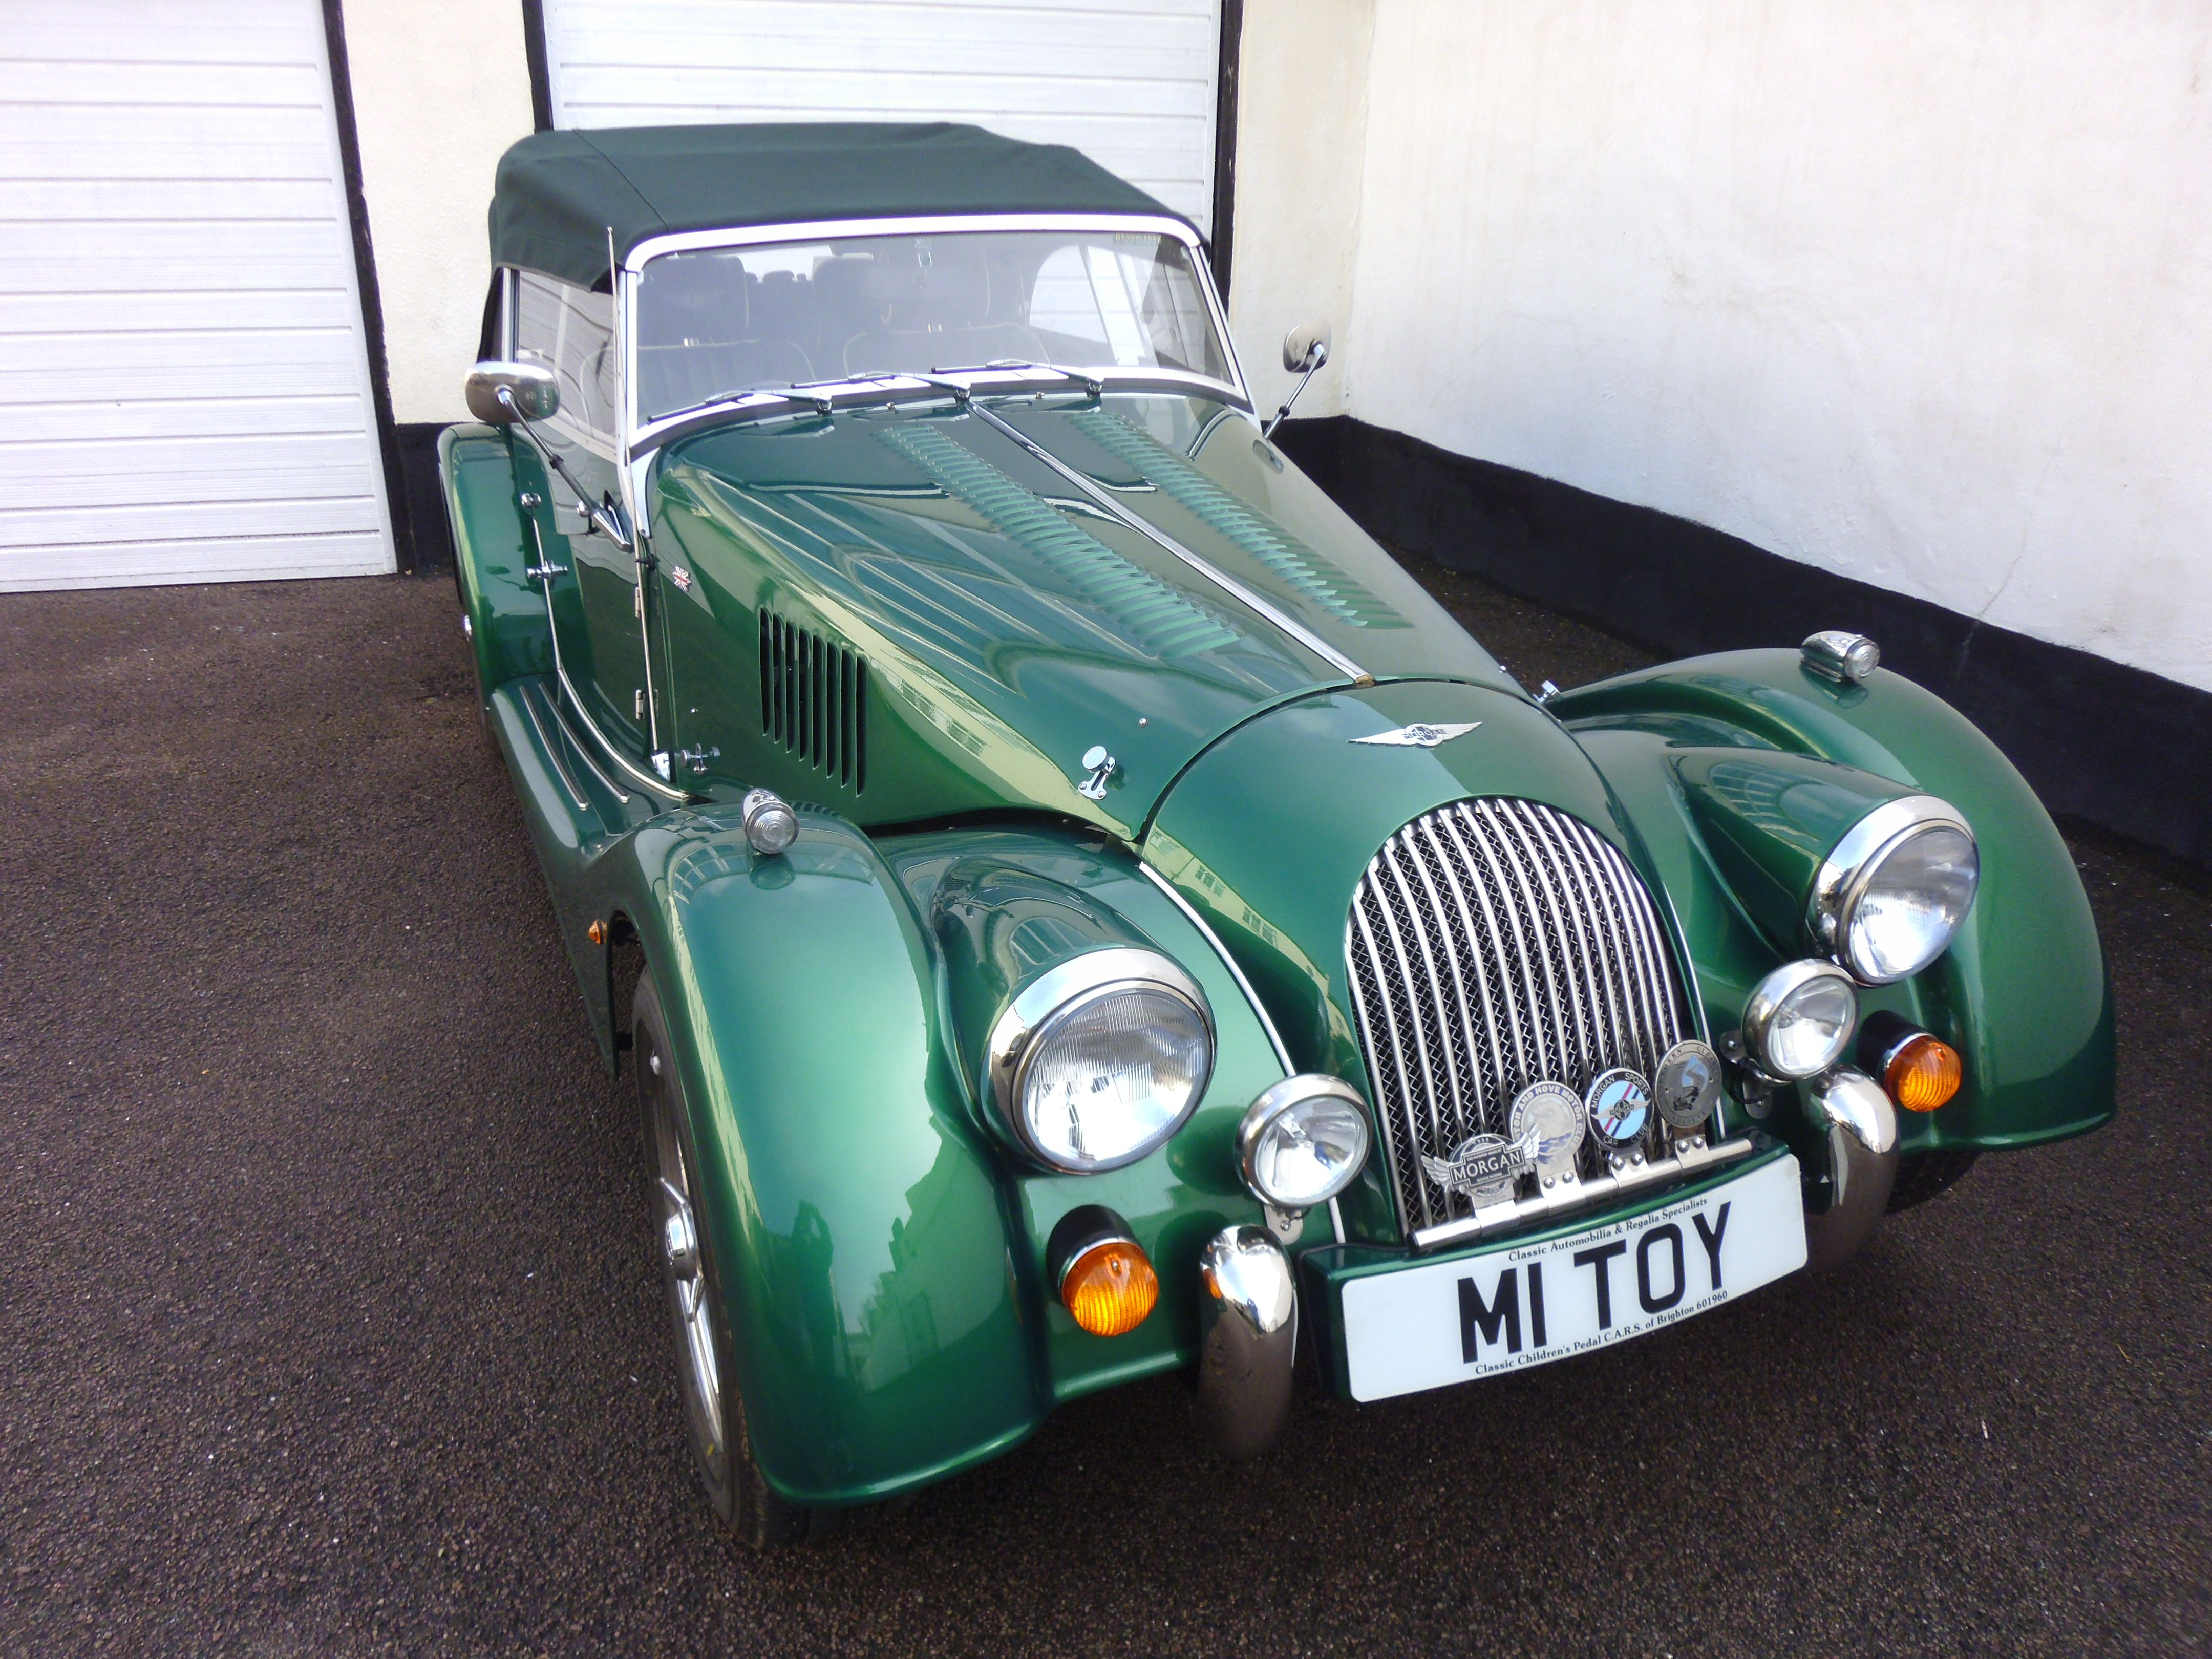 Morgan 4 Four Seater Aston Martin Ulster A Fine Limited Edition By